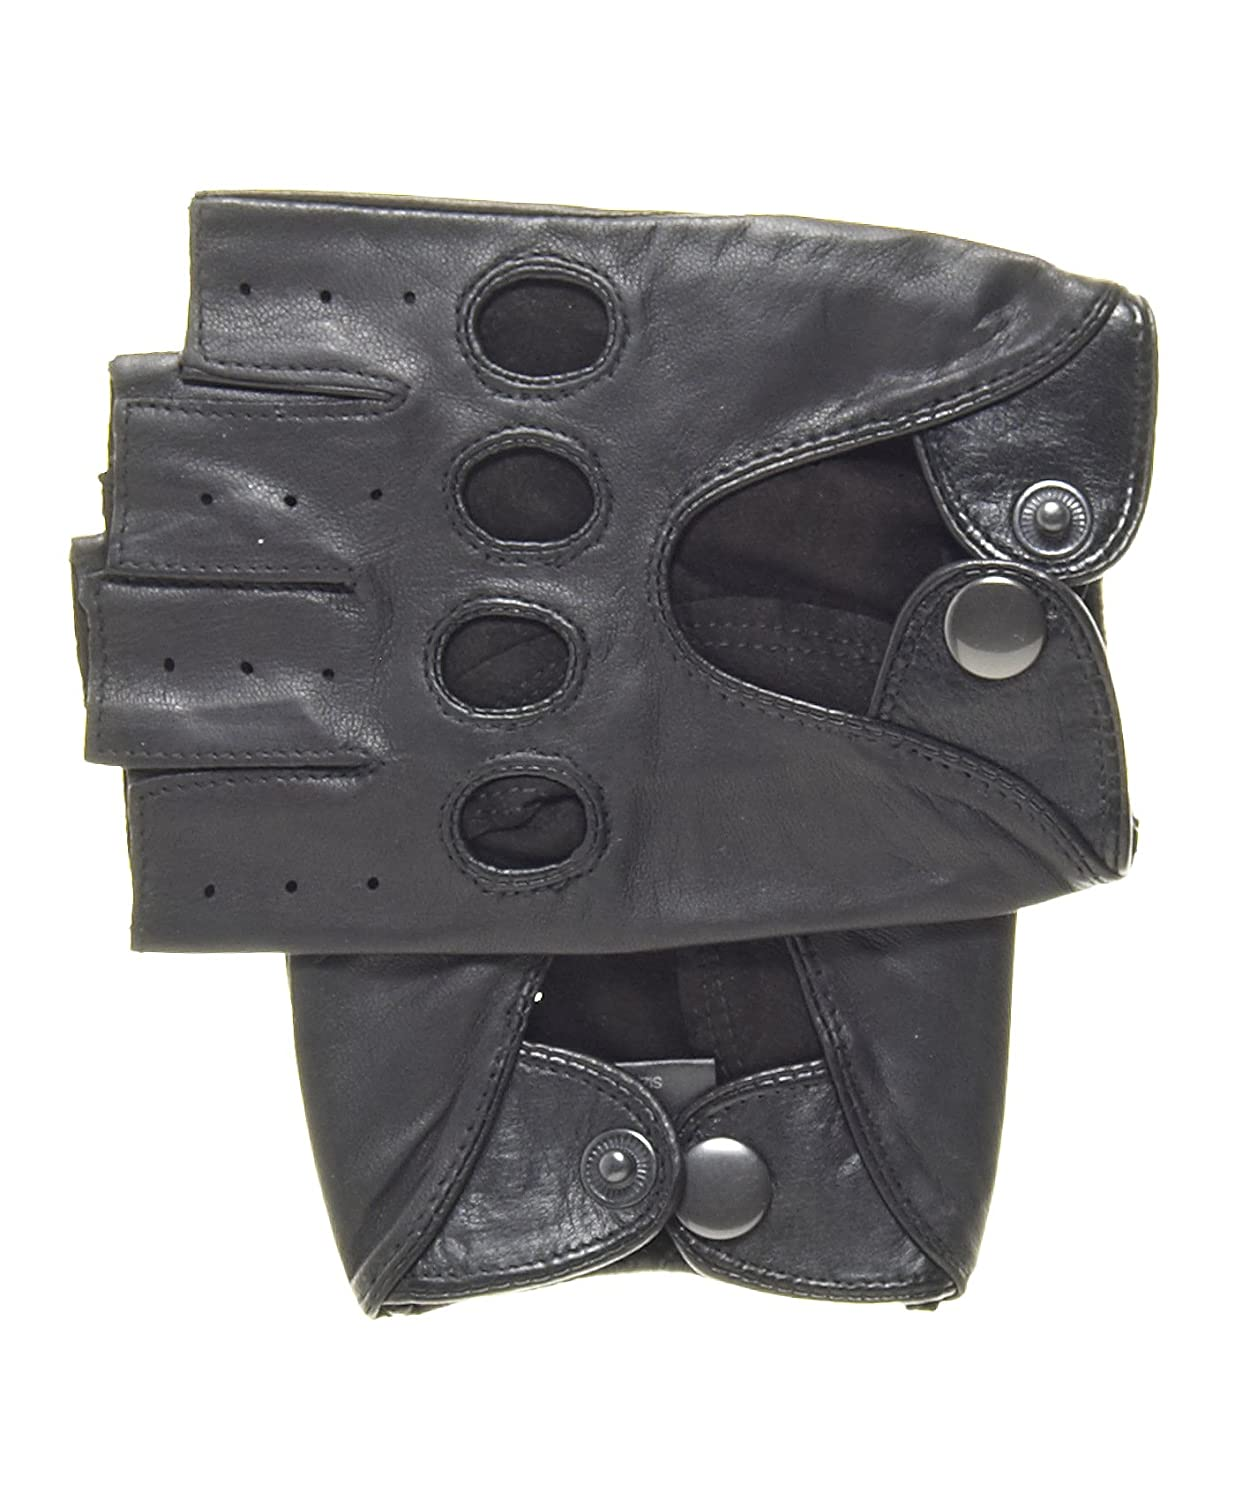 Black gloves online - Amazon Com Pratt And Hart Men S Shorty Leather Driving Gloves Fingerless Size S Color Black Clothing